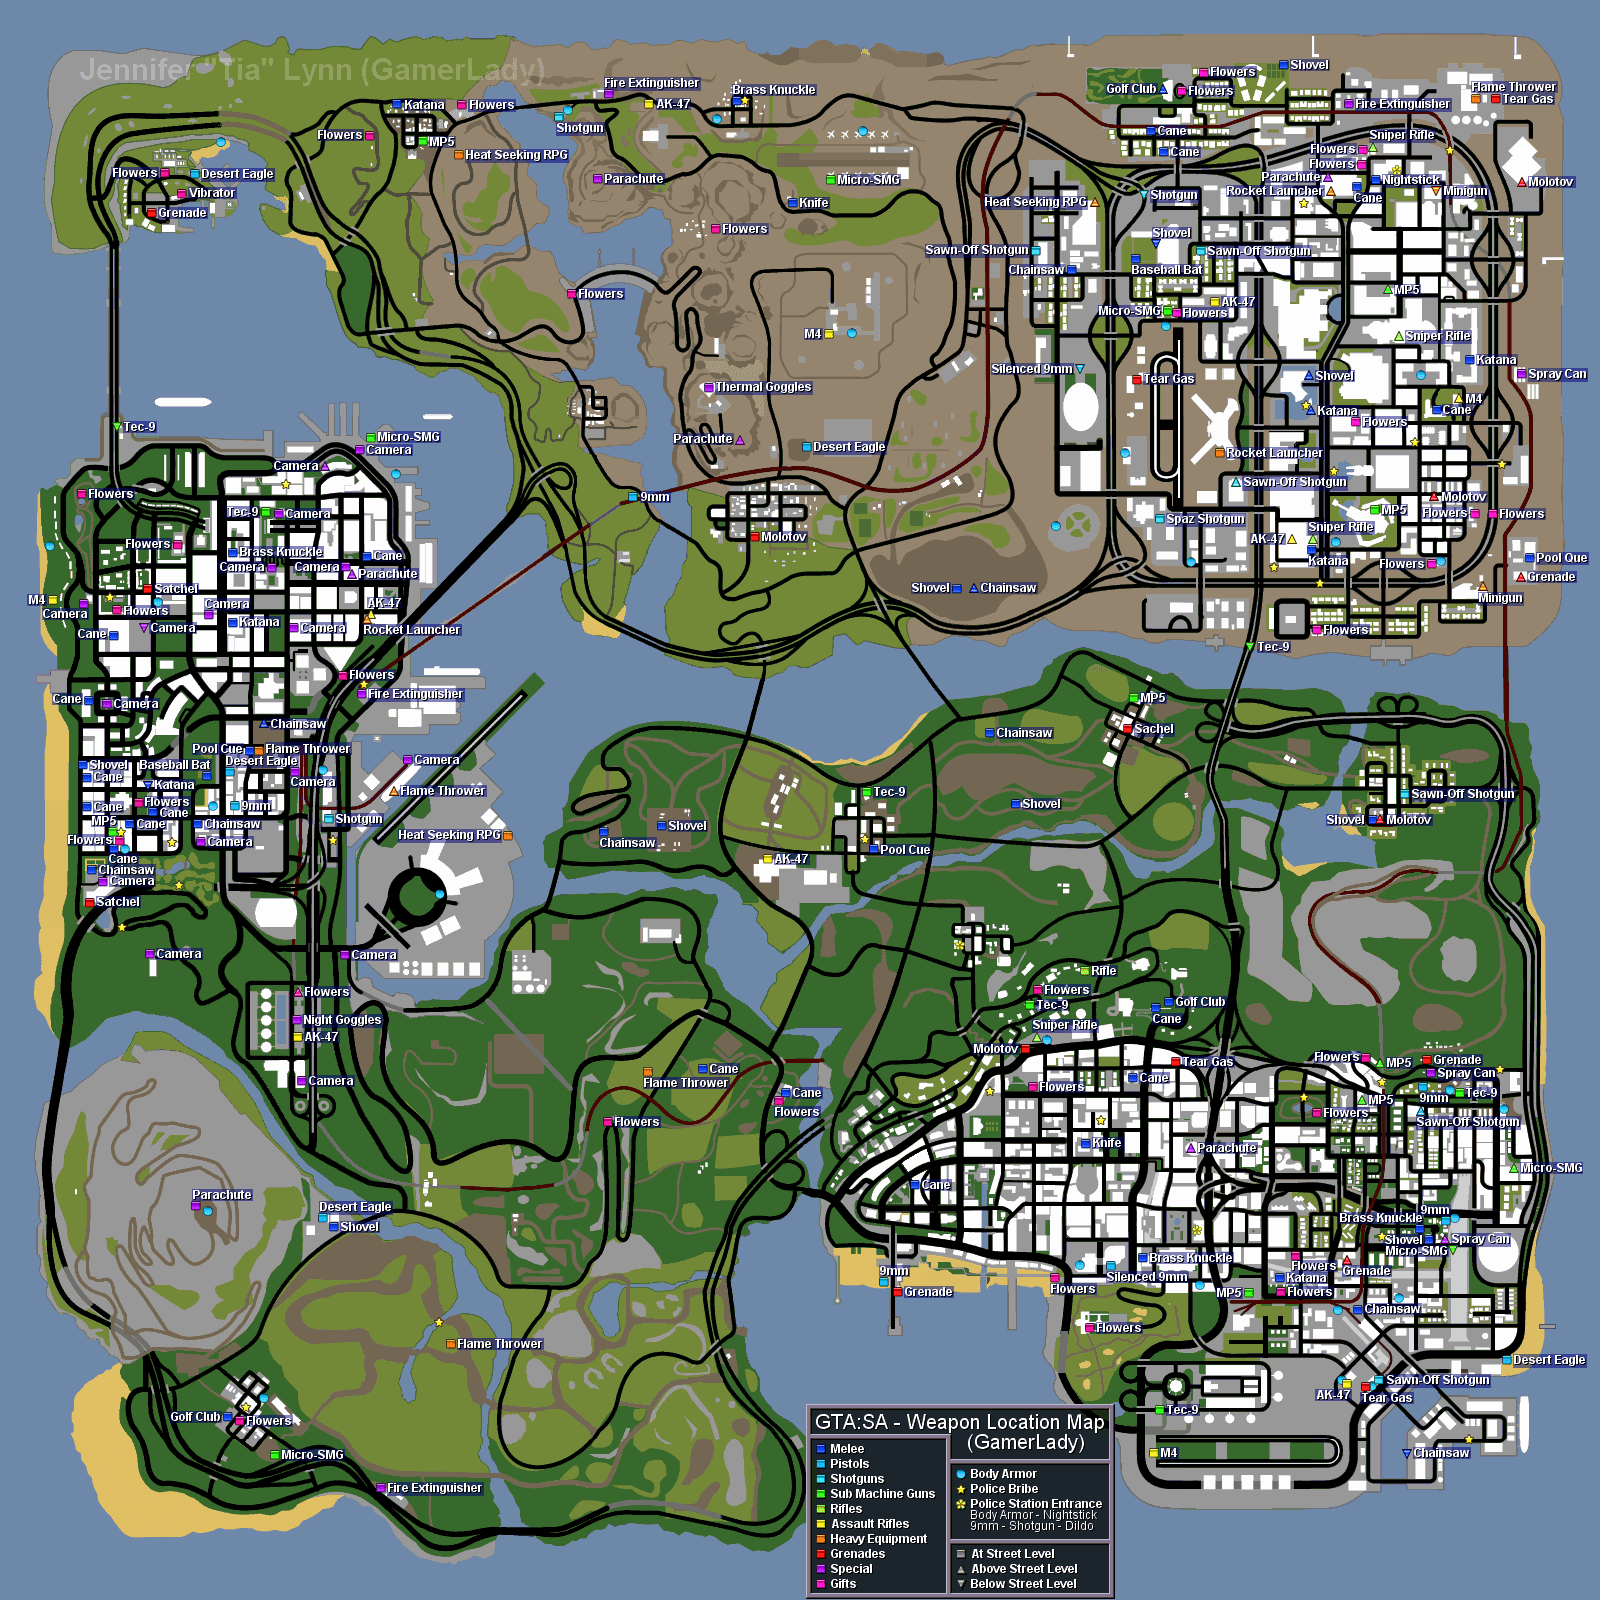 Gta san andreas gta sa maps